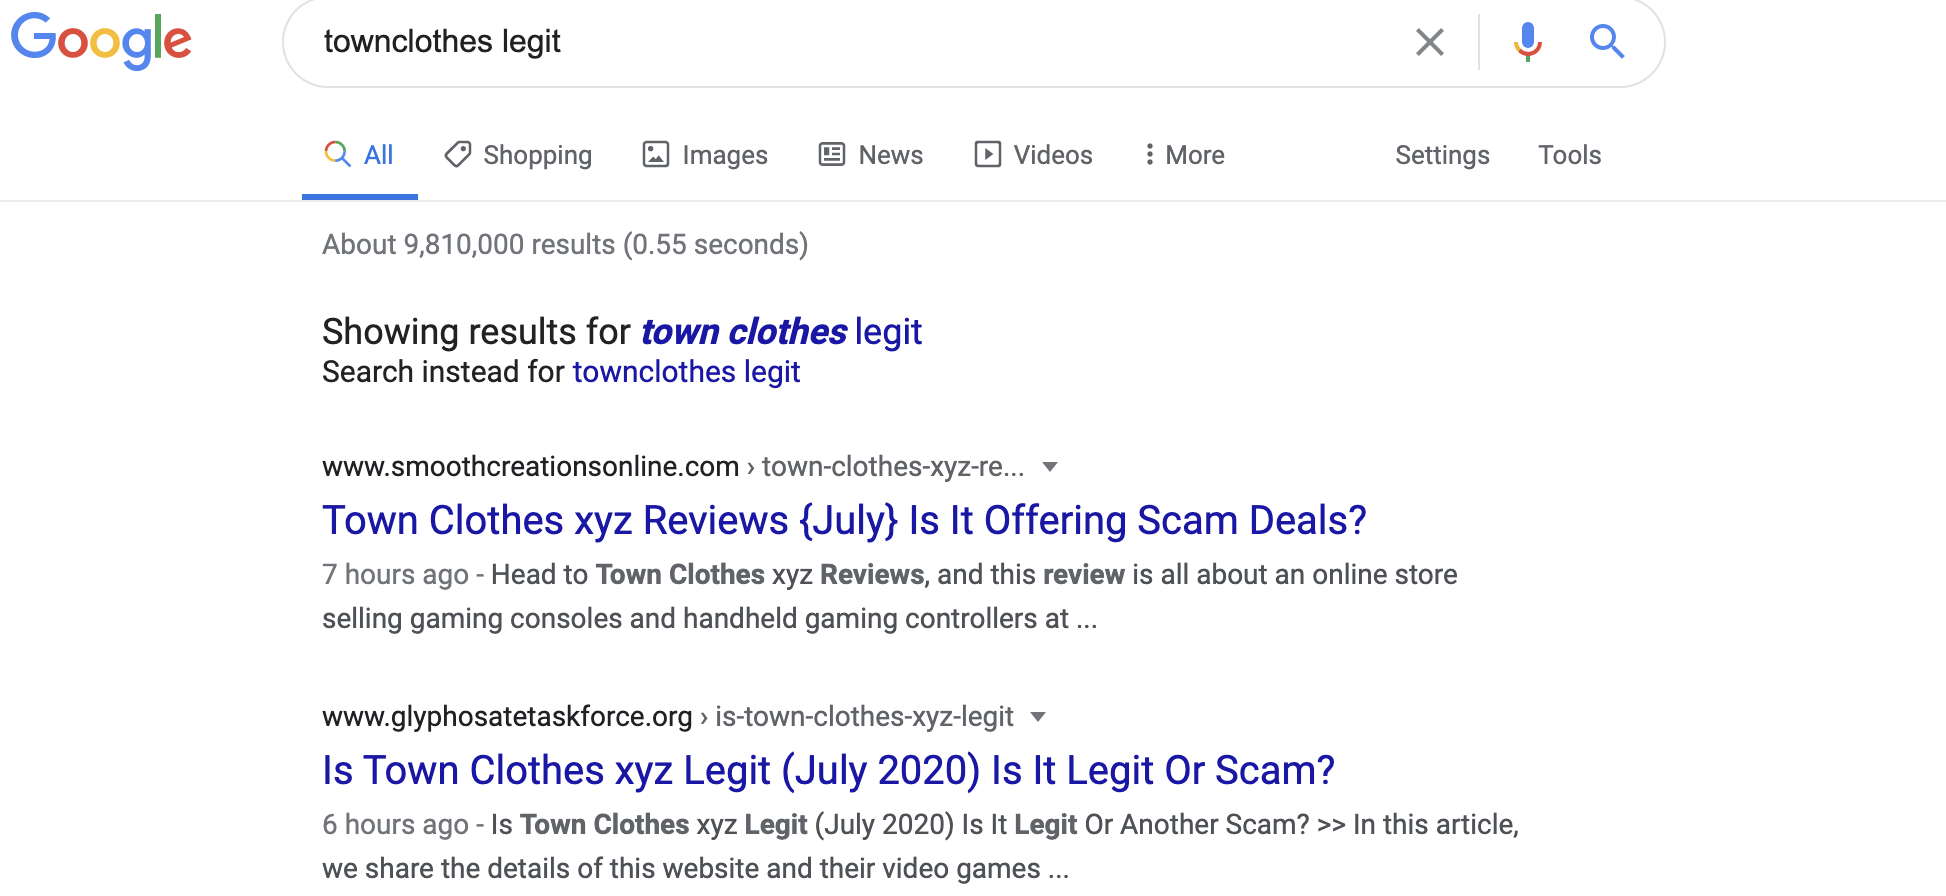 google search result on townclothes.xyz site